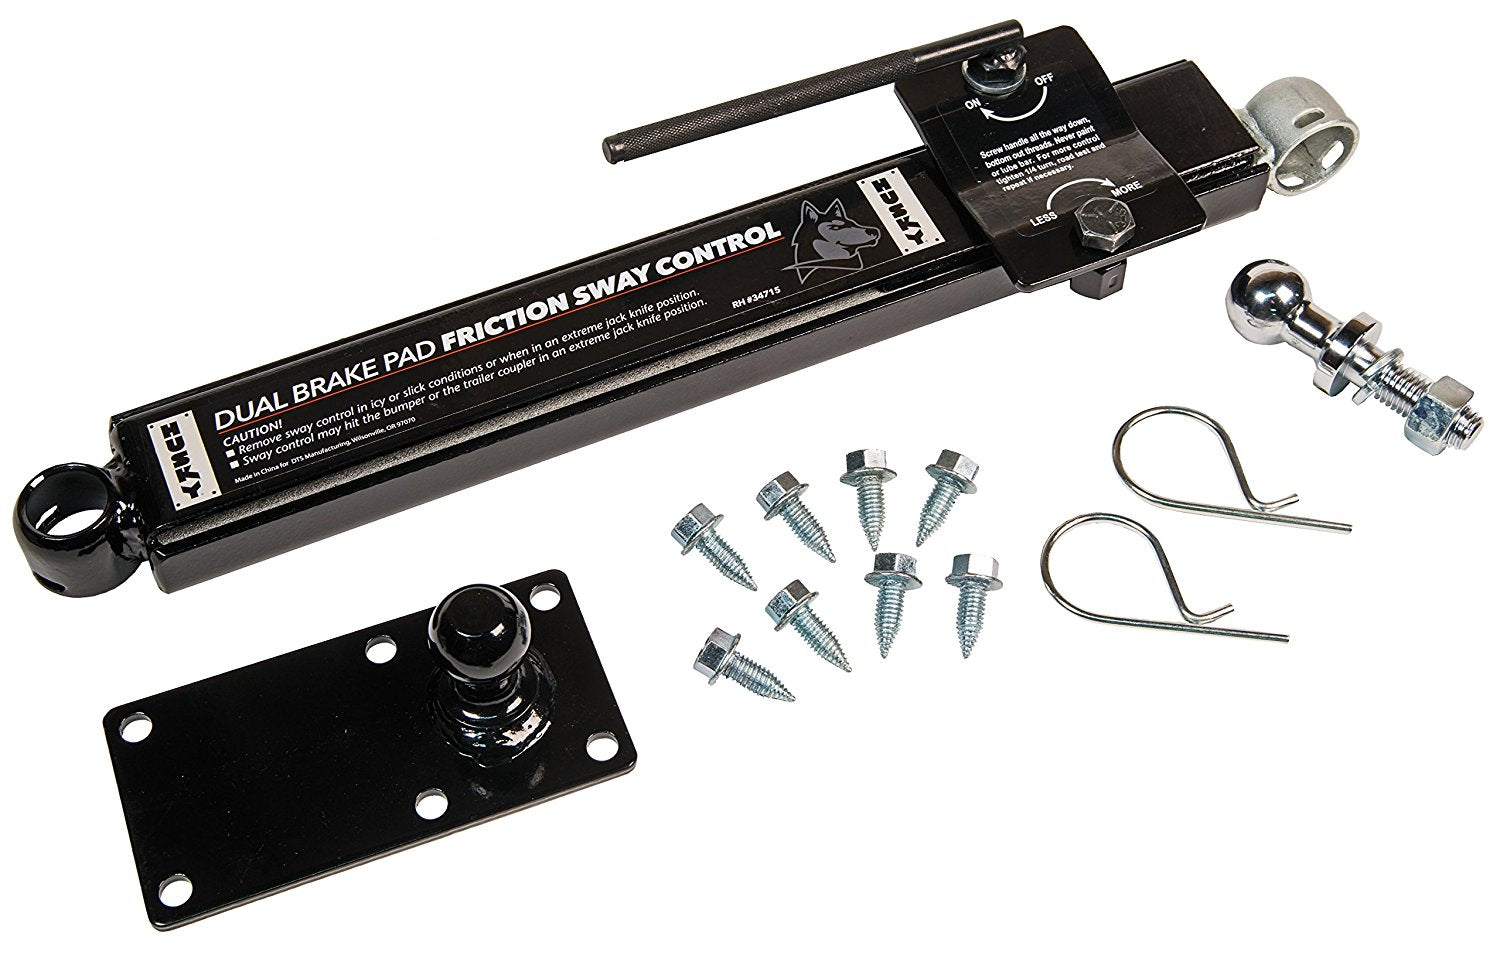 Husky Adjustable Sway Control Kit (34715) - The RV Parts House